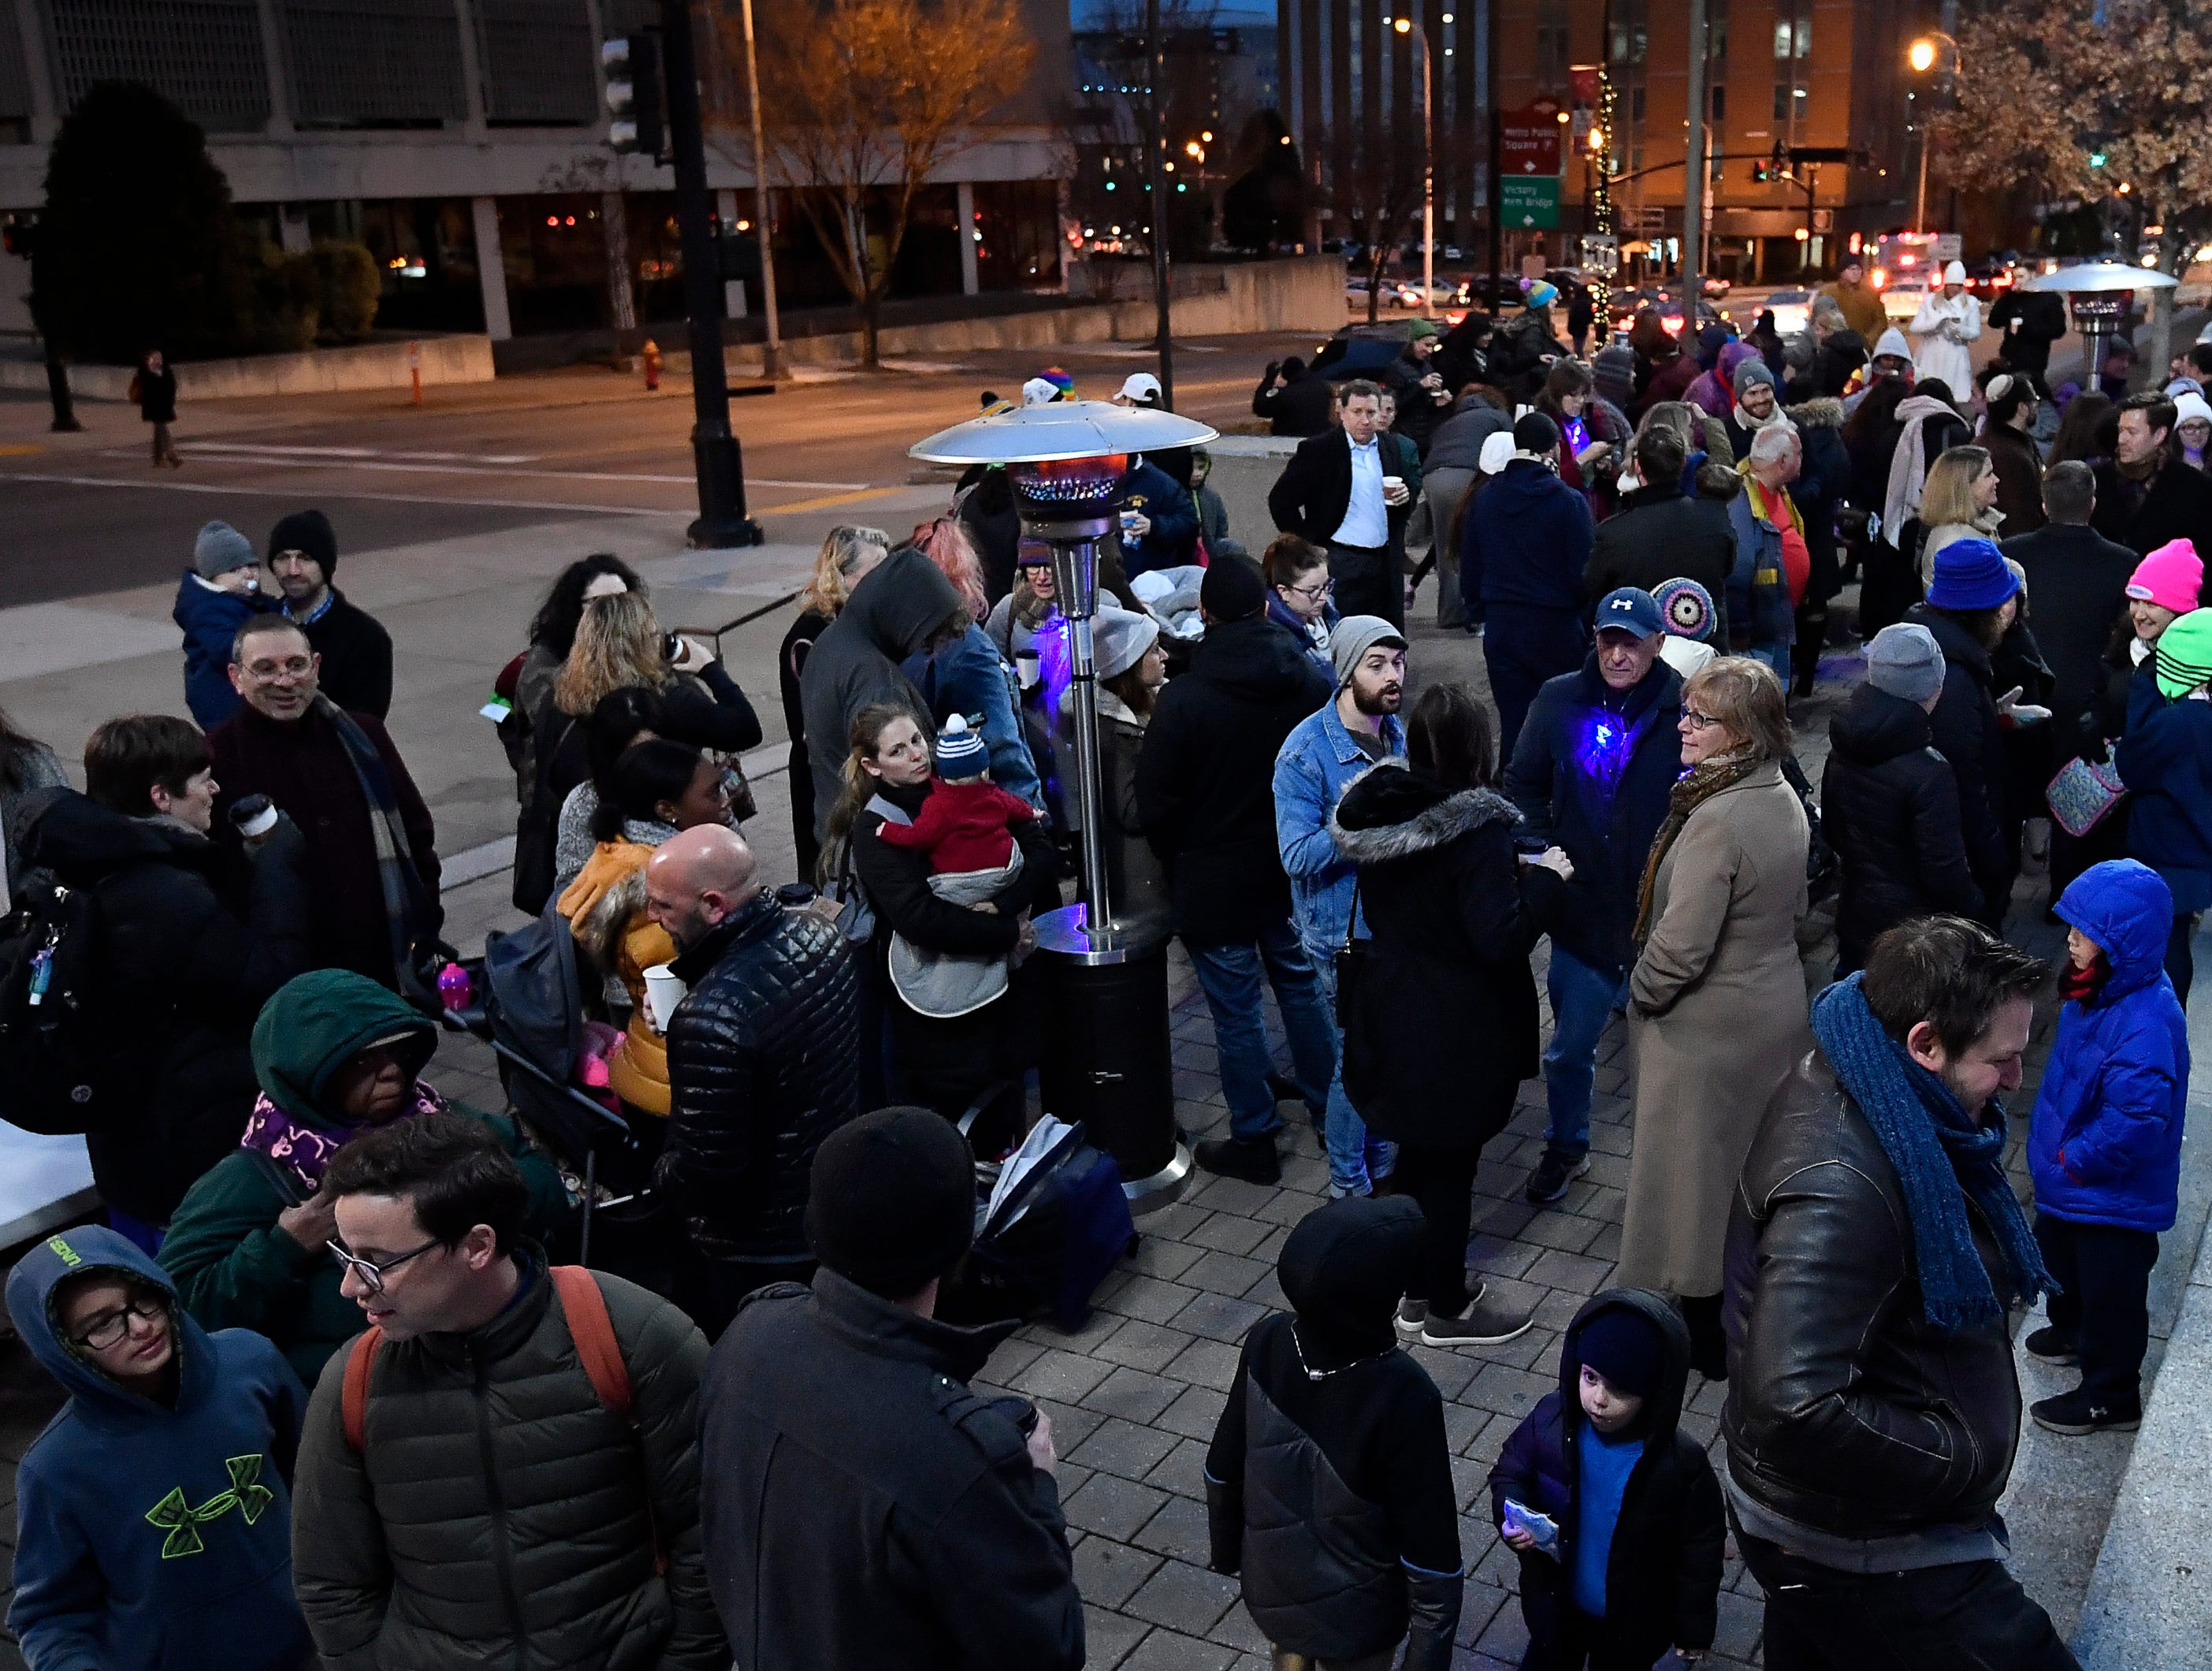 People gather on the steps of Public Square Park for a Chanukah menorah lighting ceremony Tuesday, Dec. 4, 2018, in Nashville, Tenn.